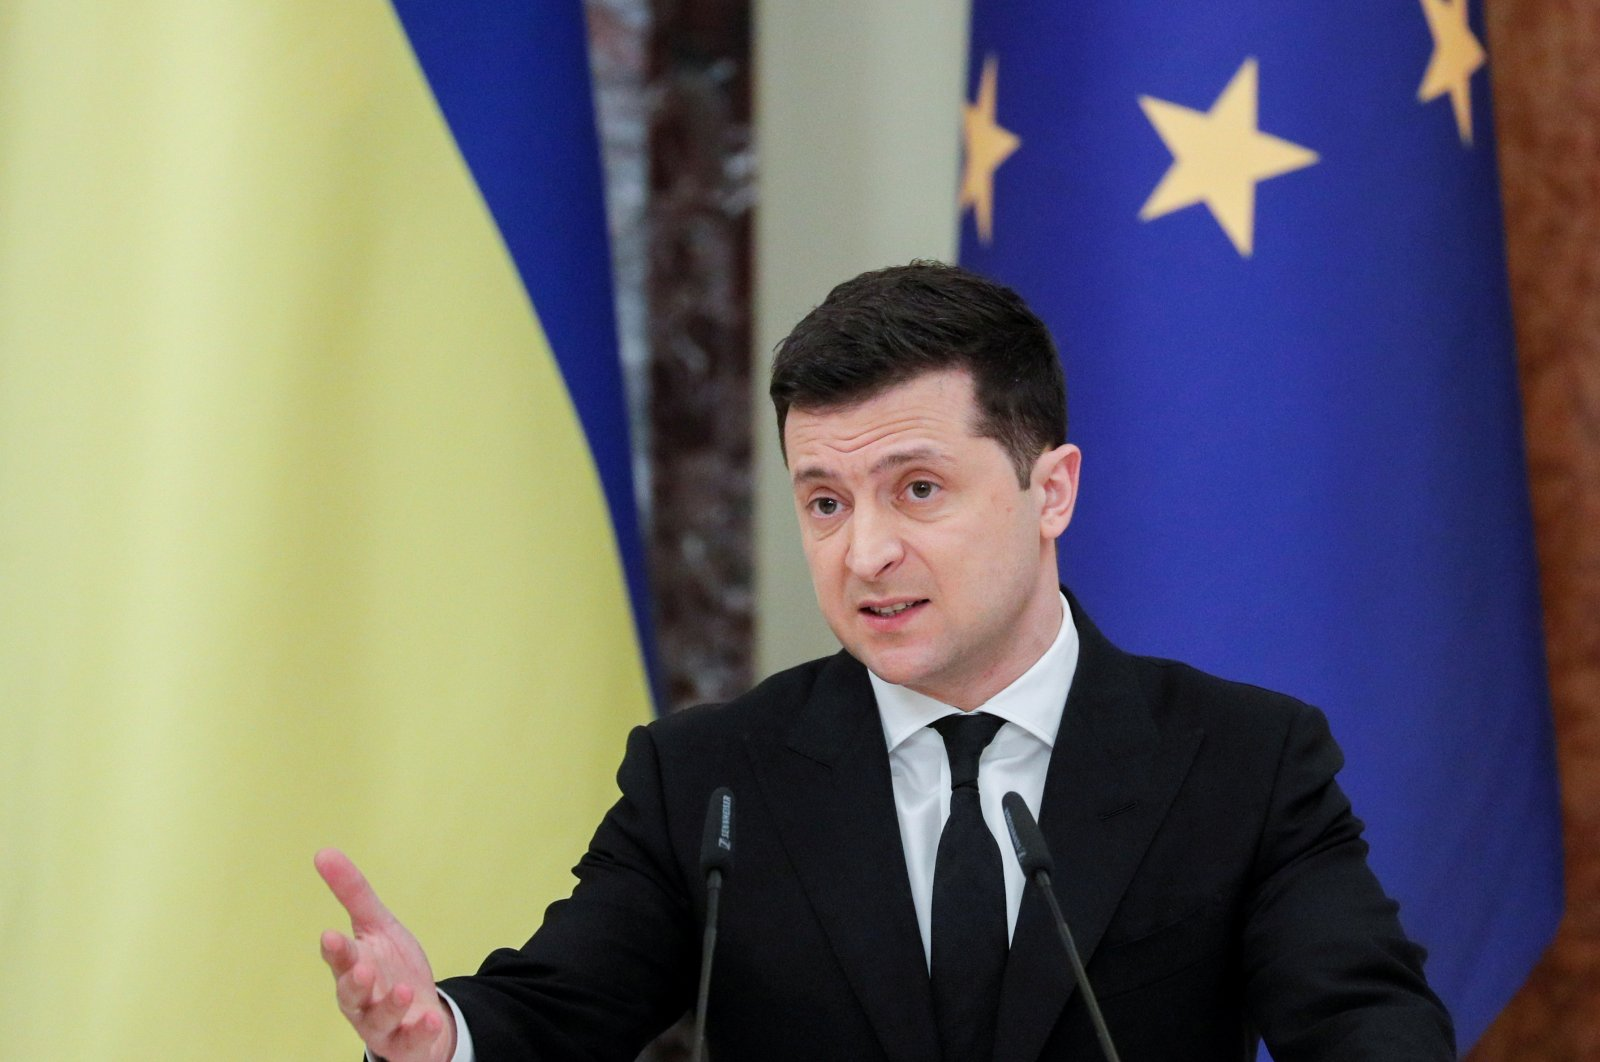 Ukrainian President Volodymyr Zelenskiy speaks during a joint news conference with European Council President Charles Michel in Kyiv, Ukraine, March 3, 2021. (Reuters Photo)